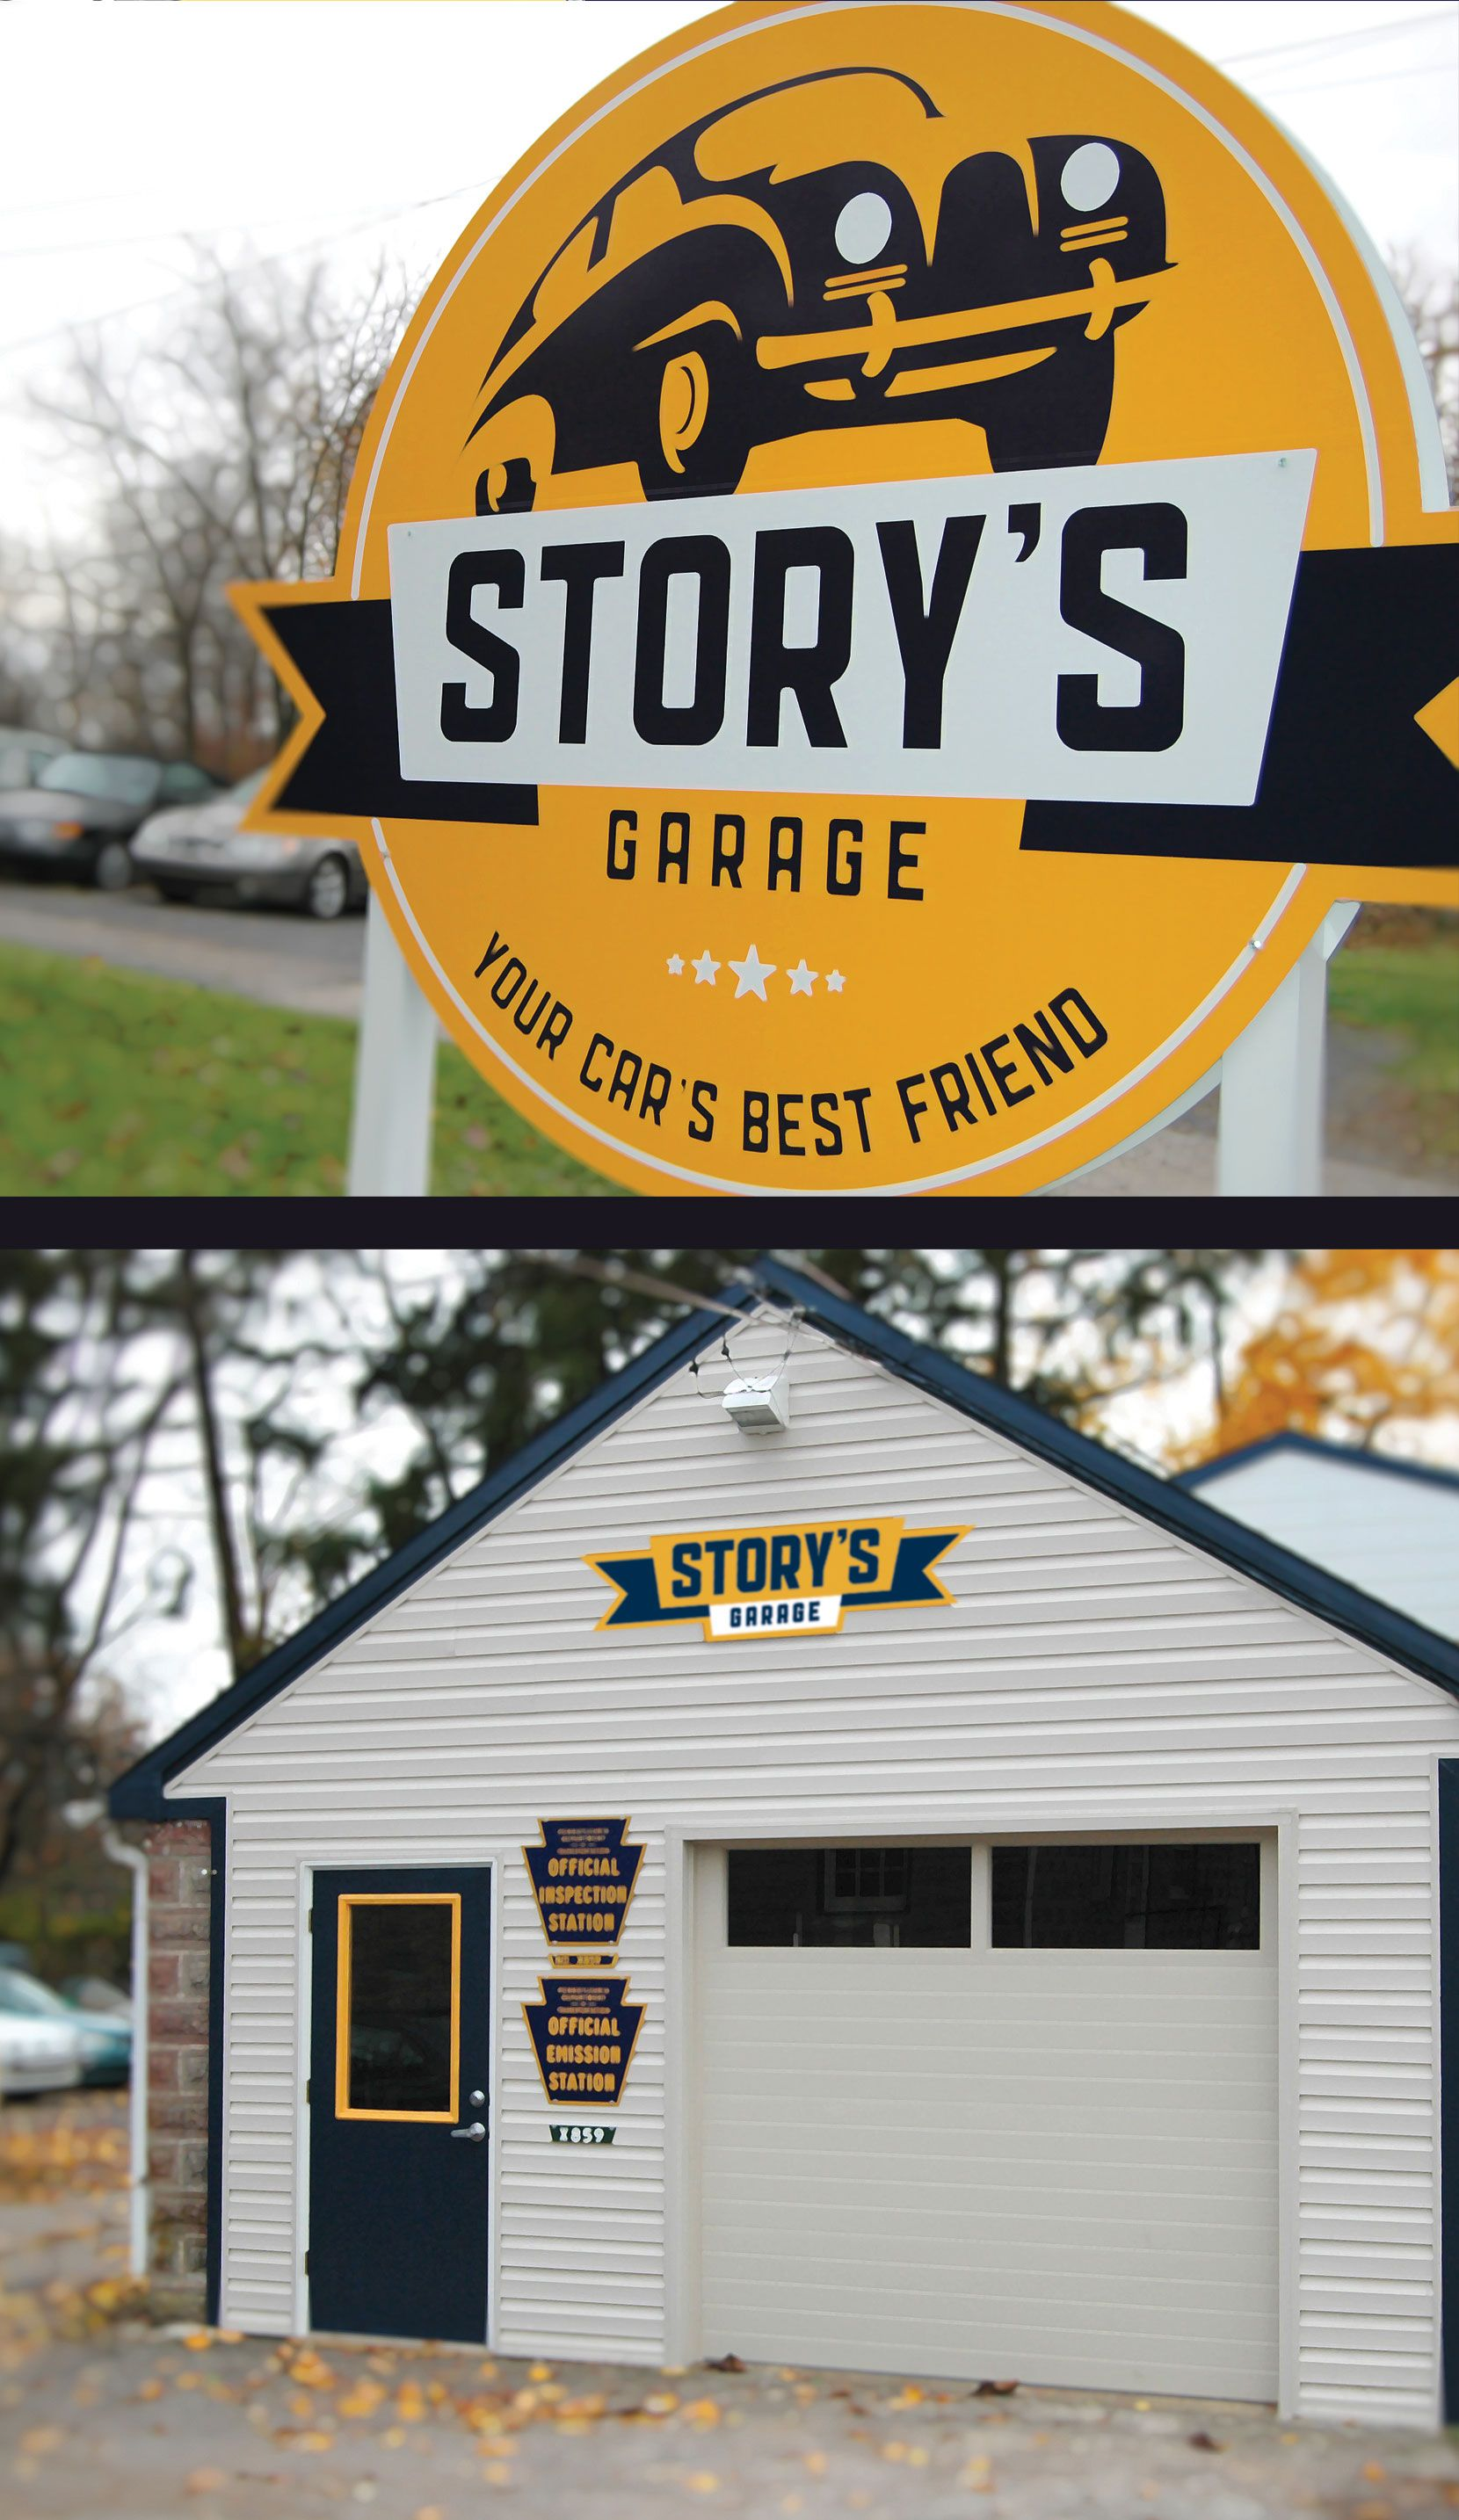 Besides A Full On Branding Campaign That Included A Striking Graphic Identity For A Little Shop Around The Corner From Vf Web Design Agency Branding Fun Signs